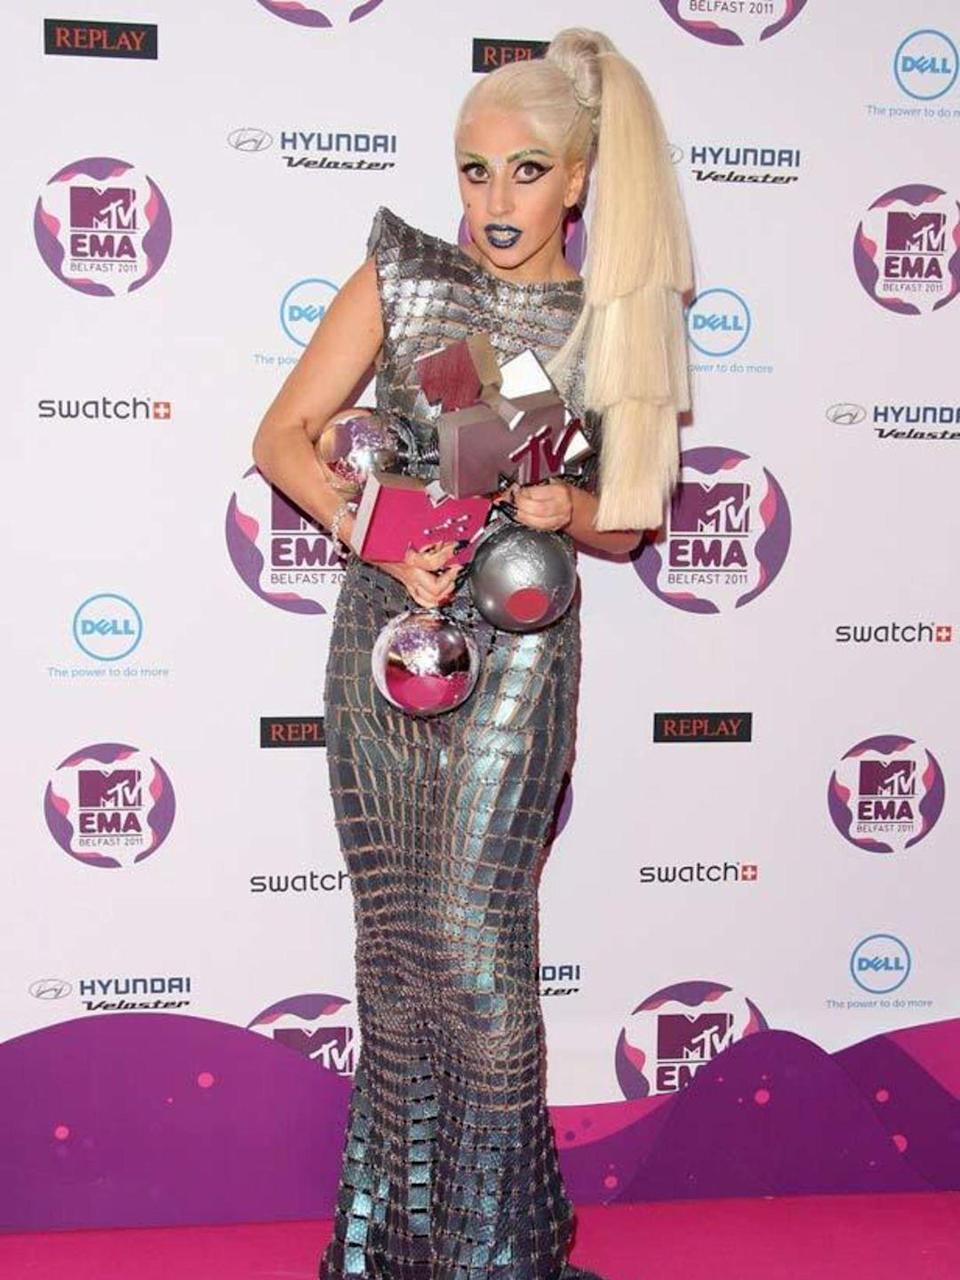 """<p>Lady Gaga works the space-age look with this metallic <a href=""""http://www.elleuk.com/catwalk/collections/paco-rabanne/"""" rel=""""nofollow noopener"""" target=""""_blank"""" data-ylk=""""slk:Paco Rabanne"""" class=""""link rapid-noclick-resp"""">Paco Rabanne</a> S/S 12 dress, slicked back ponytail and blue and silver makeup for the MTV Europe Music Awards in Ireland, November 2011.</p>"""